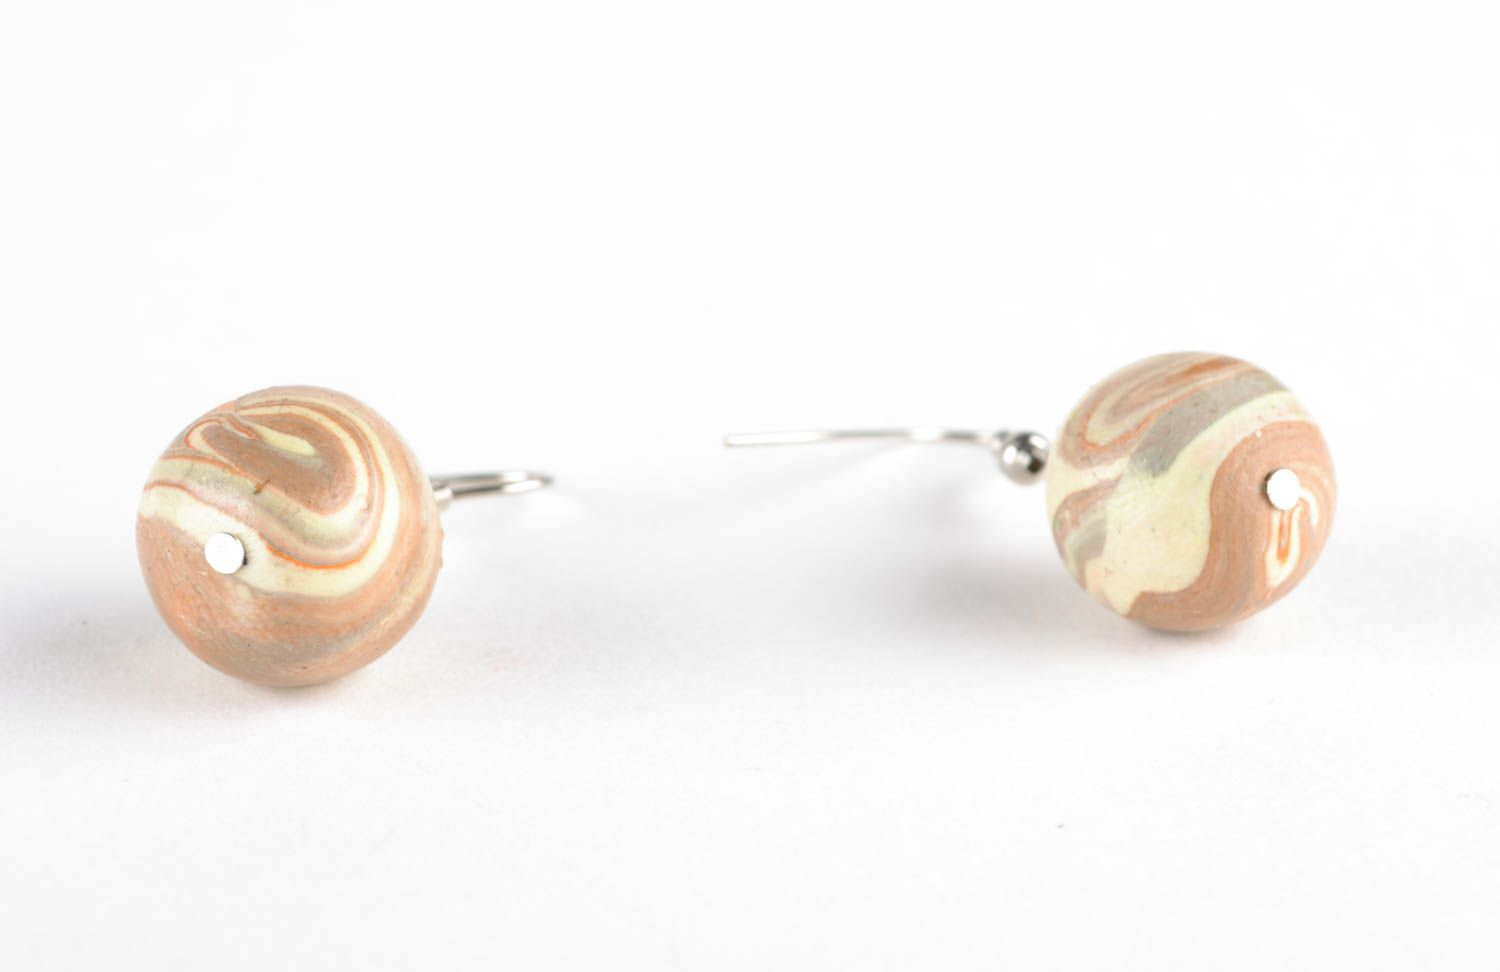 Earrings with plastic charms photo 3